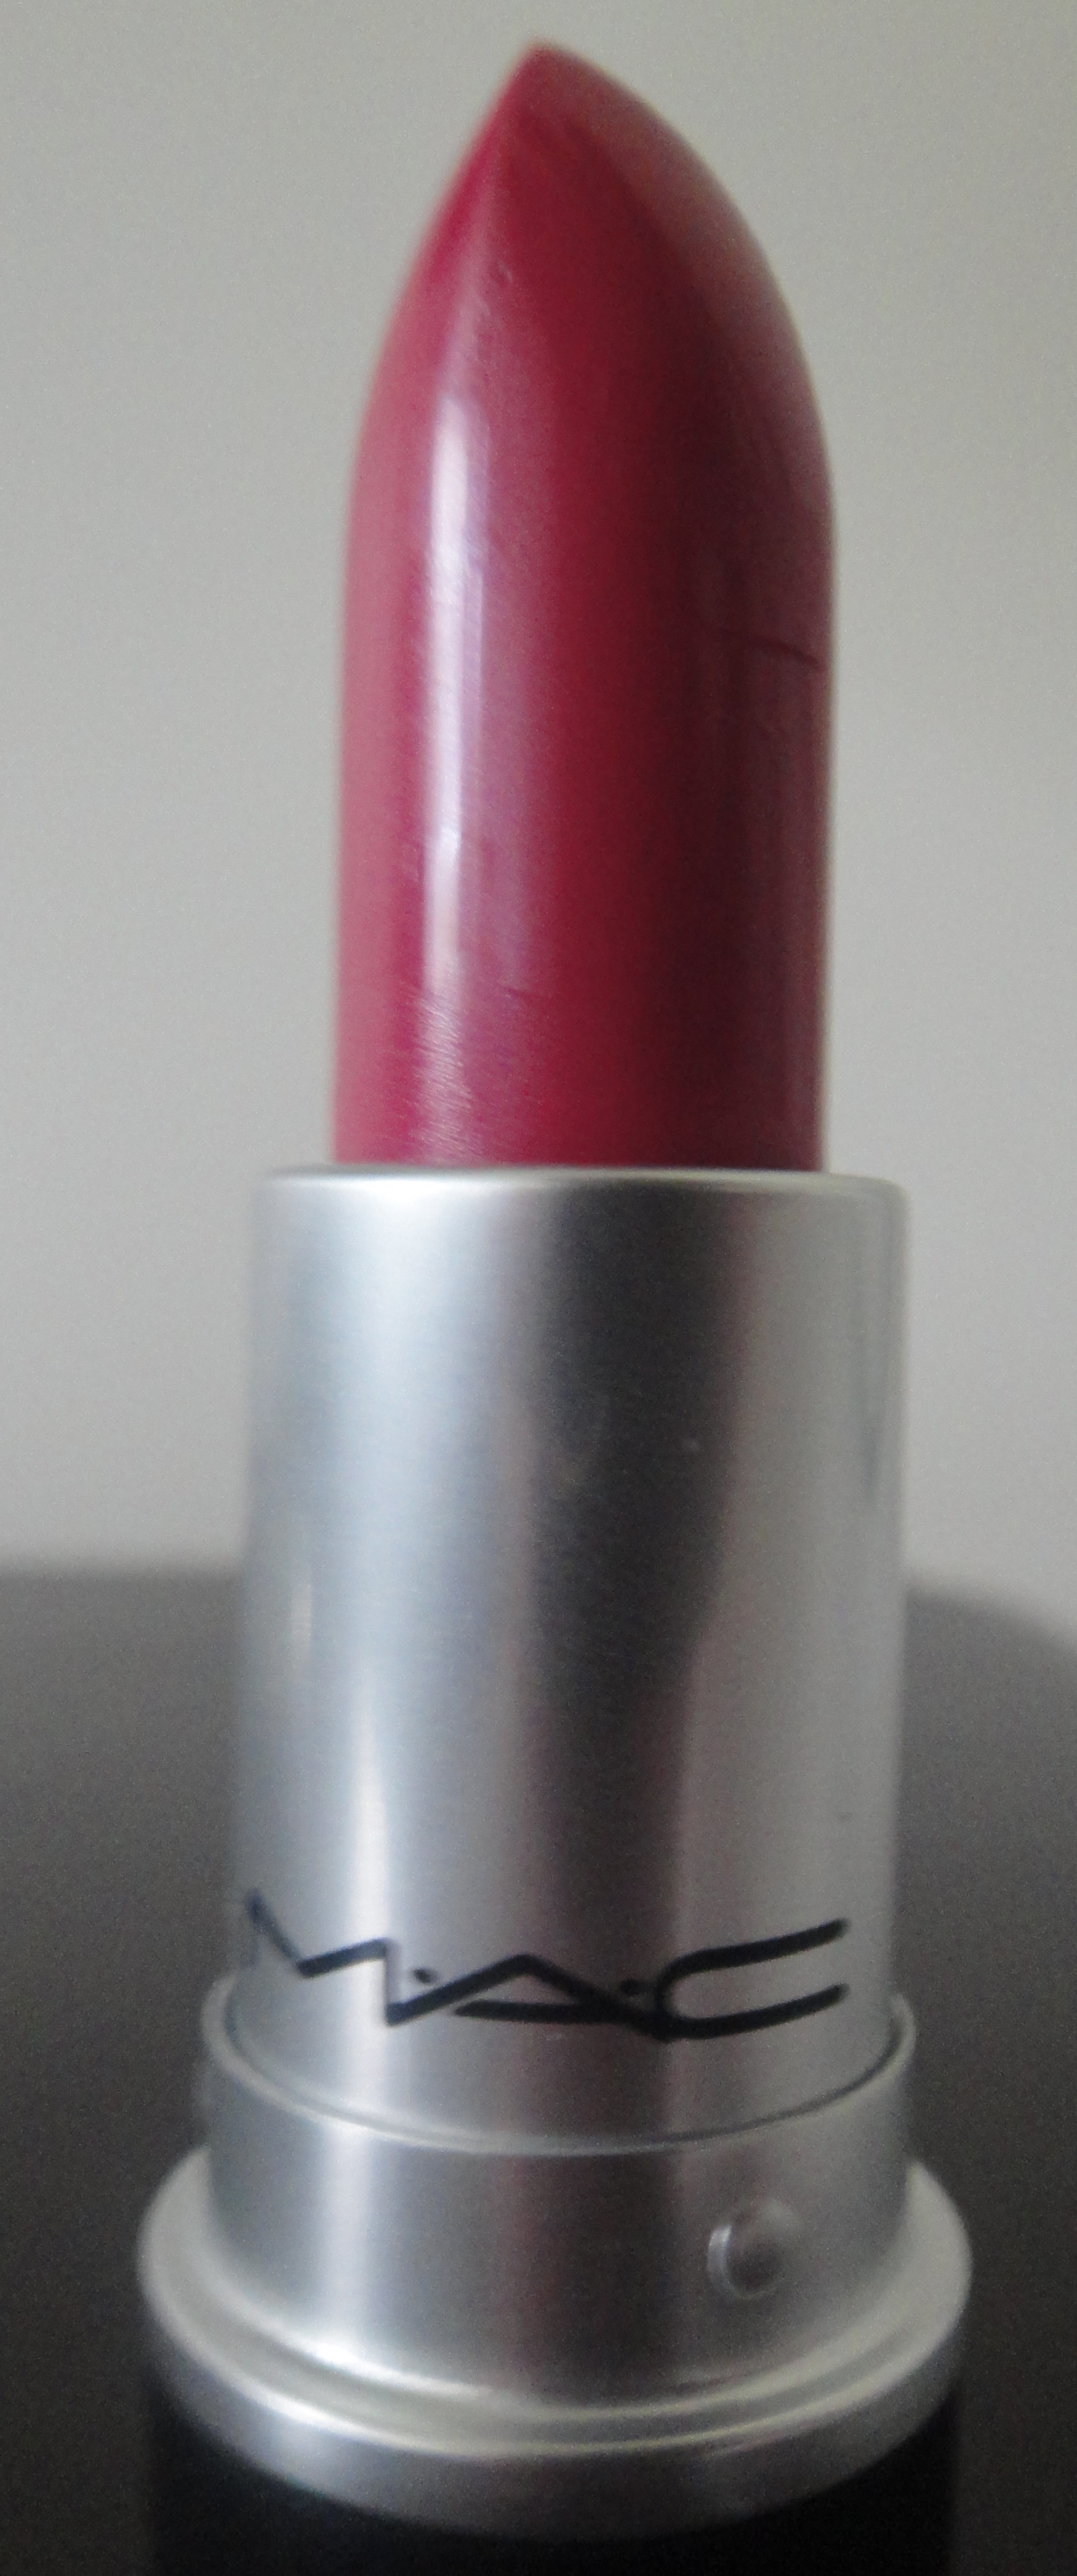 Best MAC Pink Lipsticks – Our Top 10 Picks picture